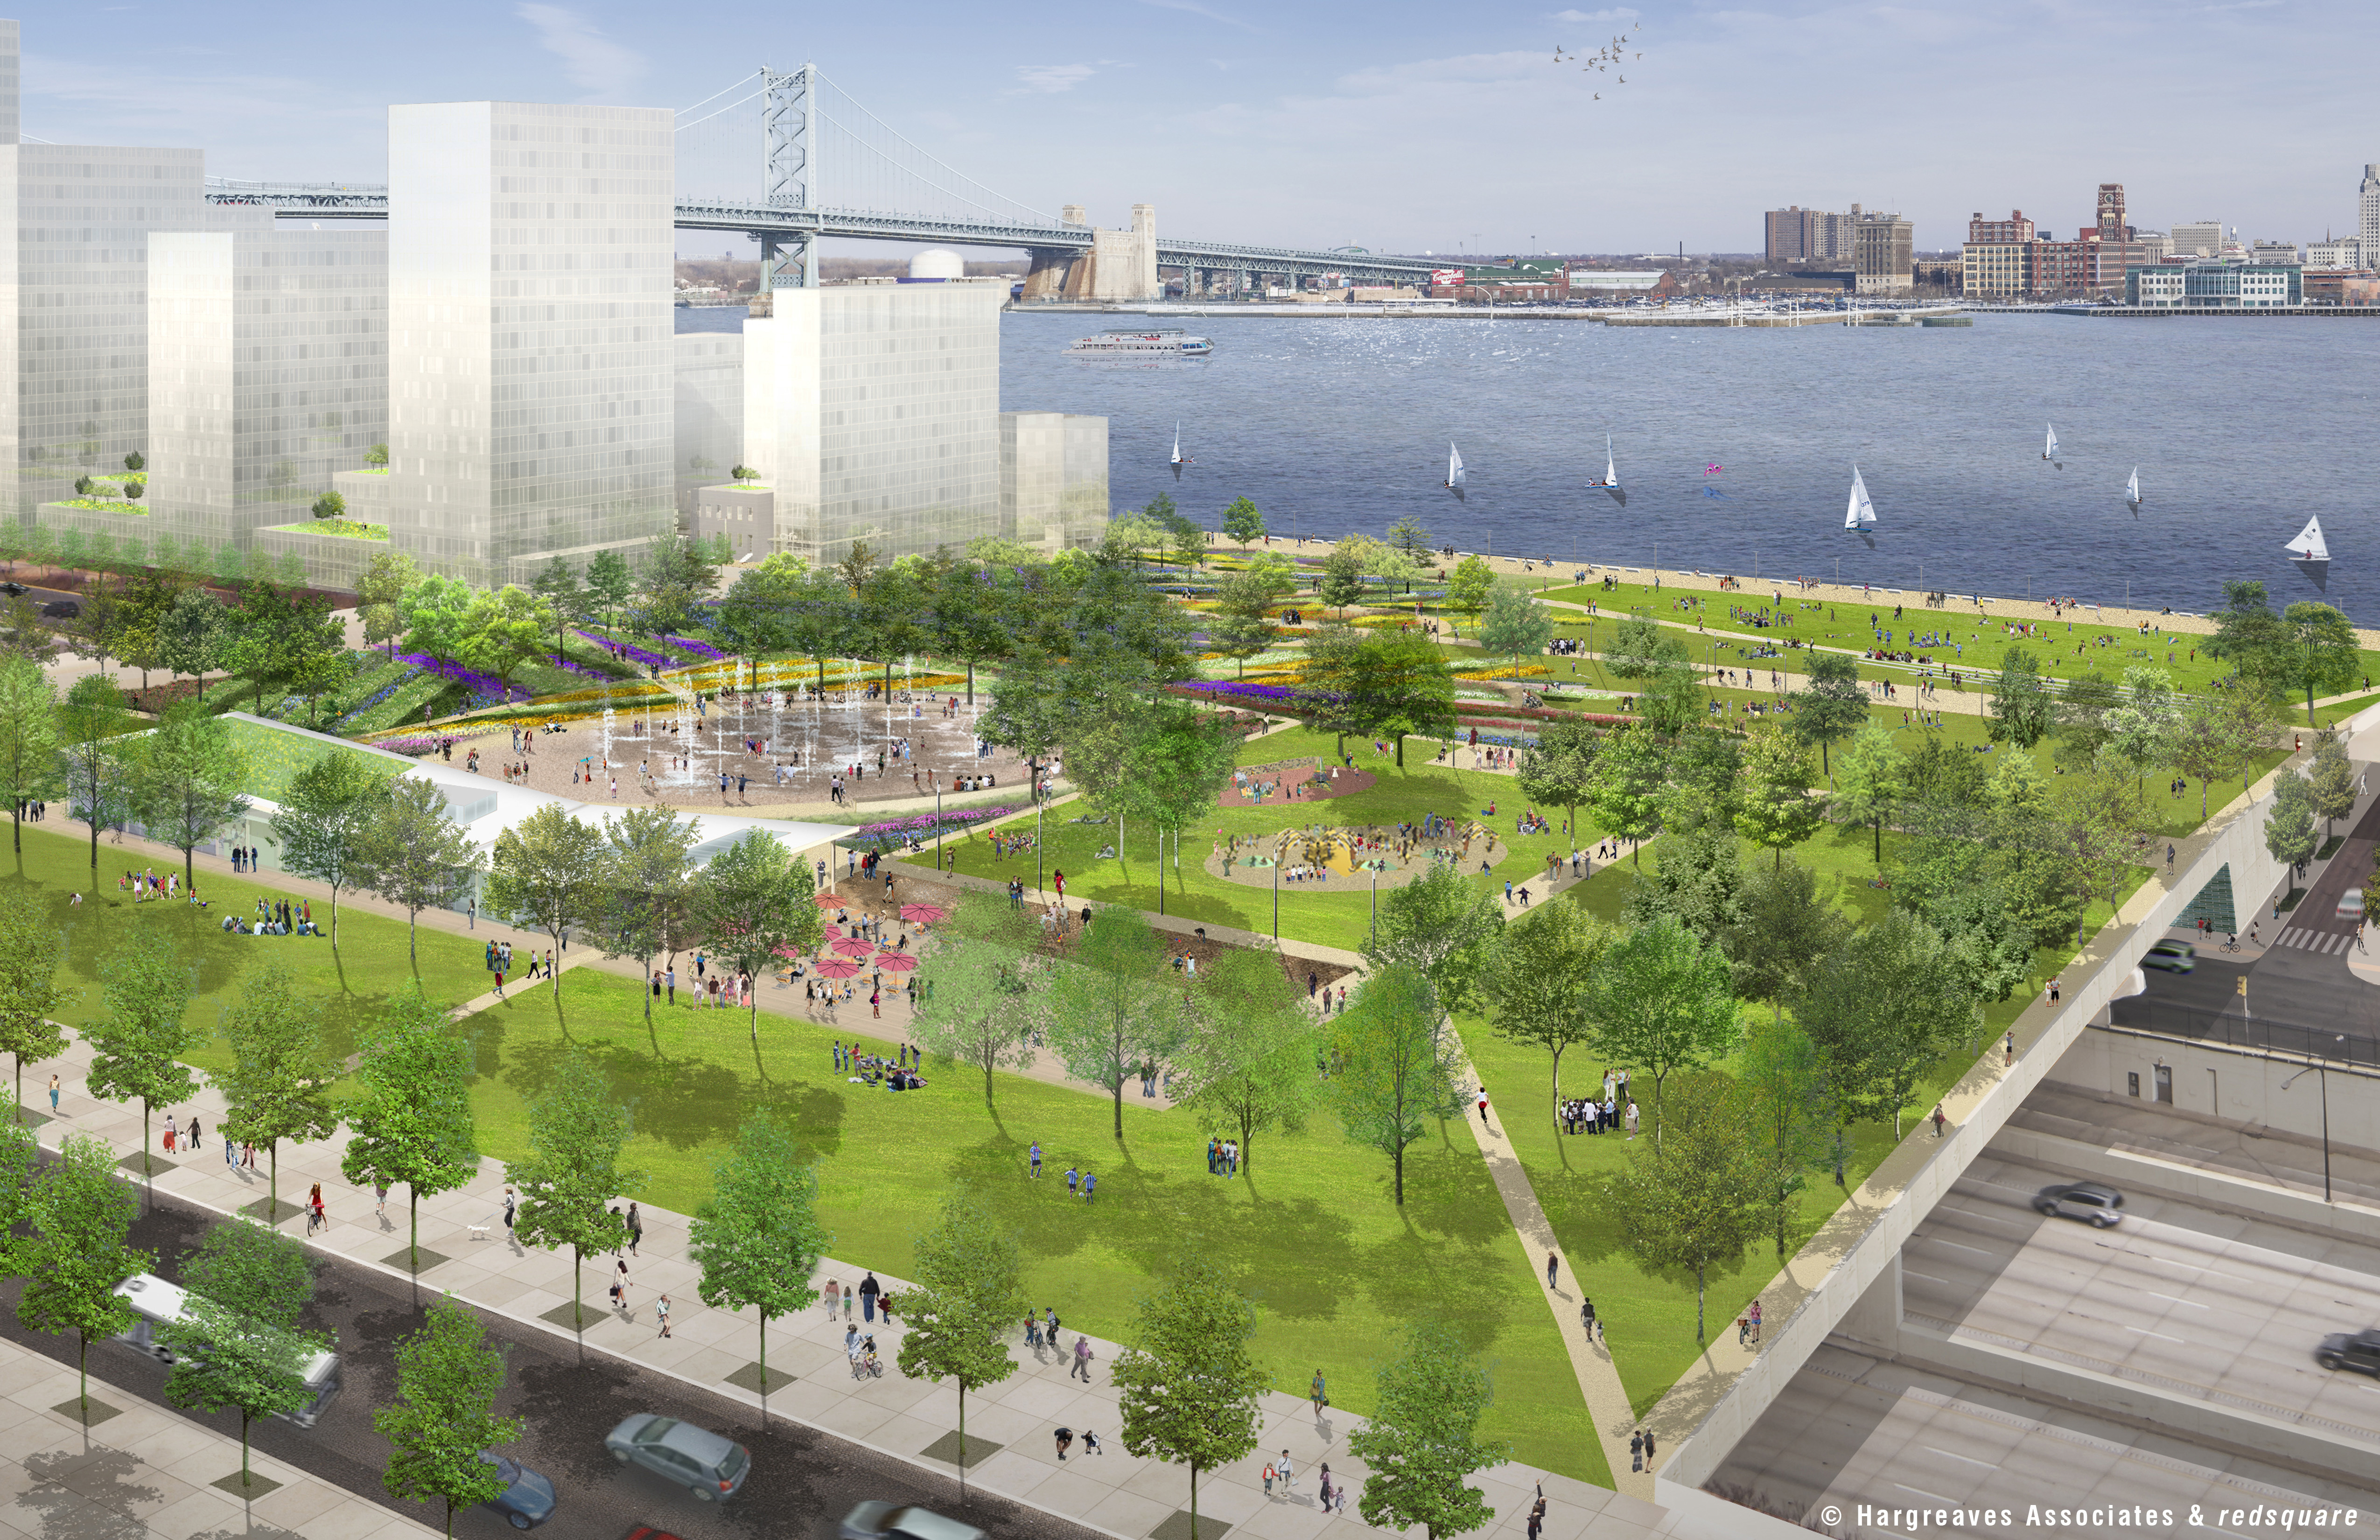 Penn's Landing Park looking east, © Hargreaves Associates & redsquare